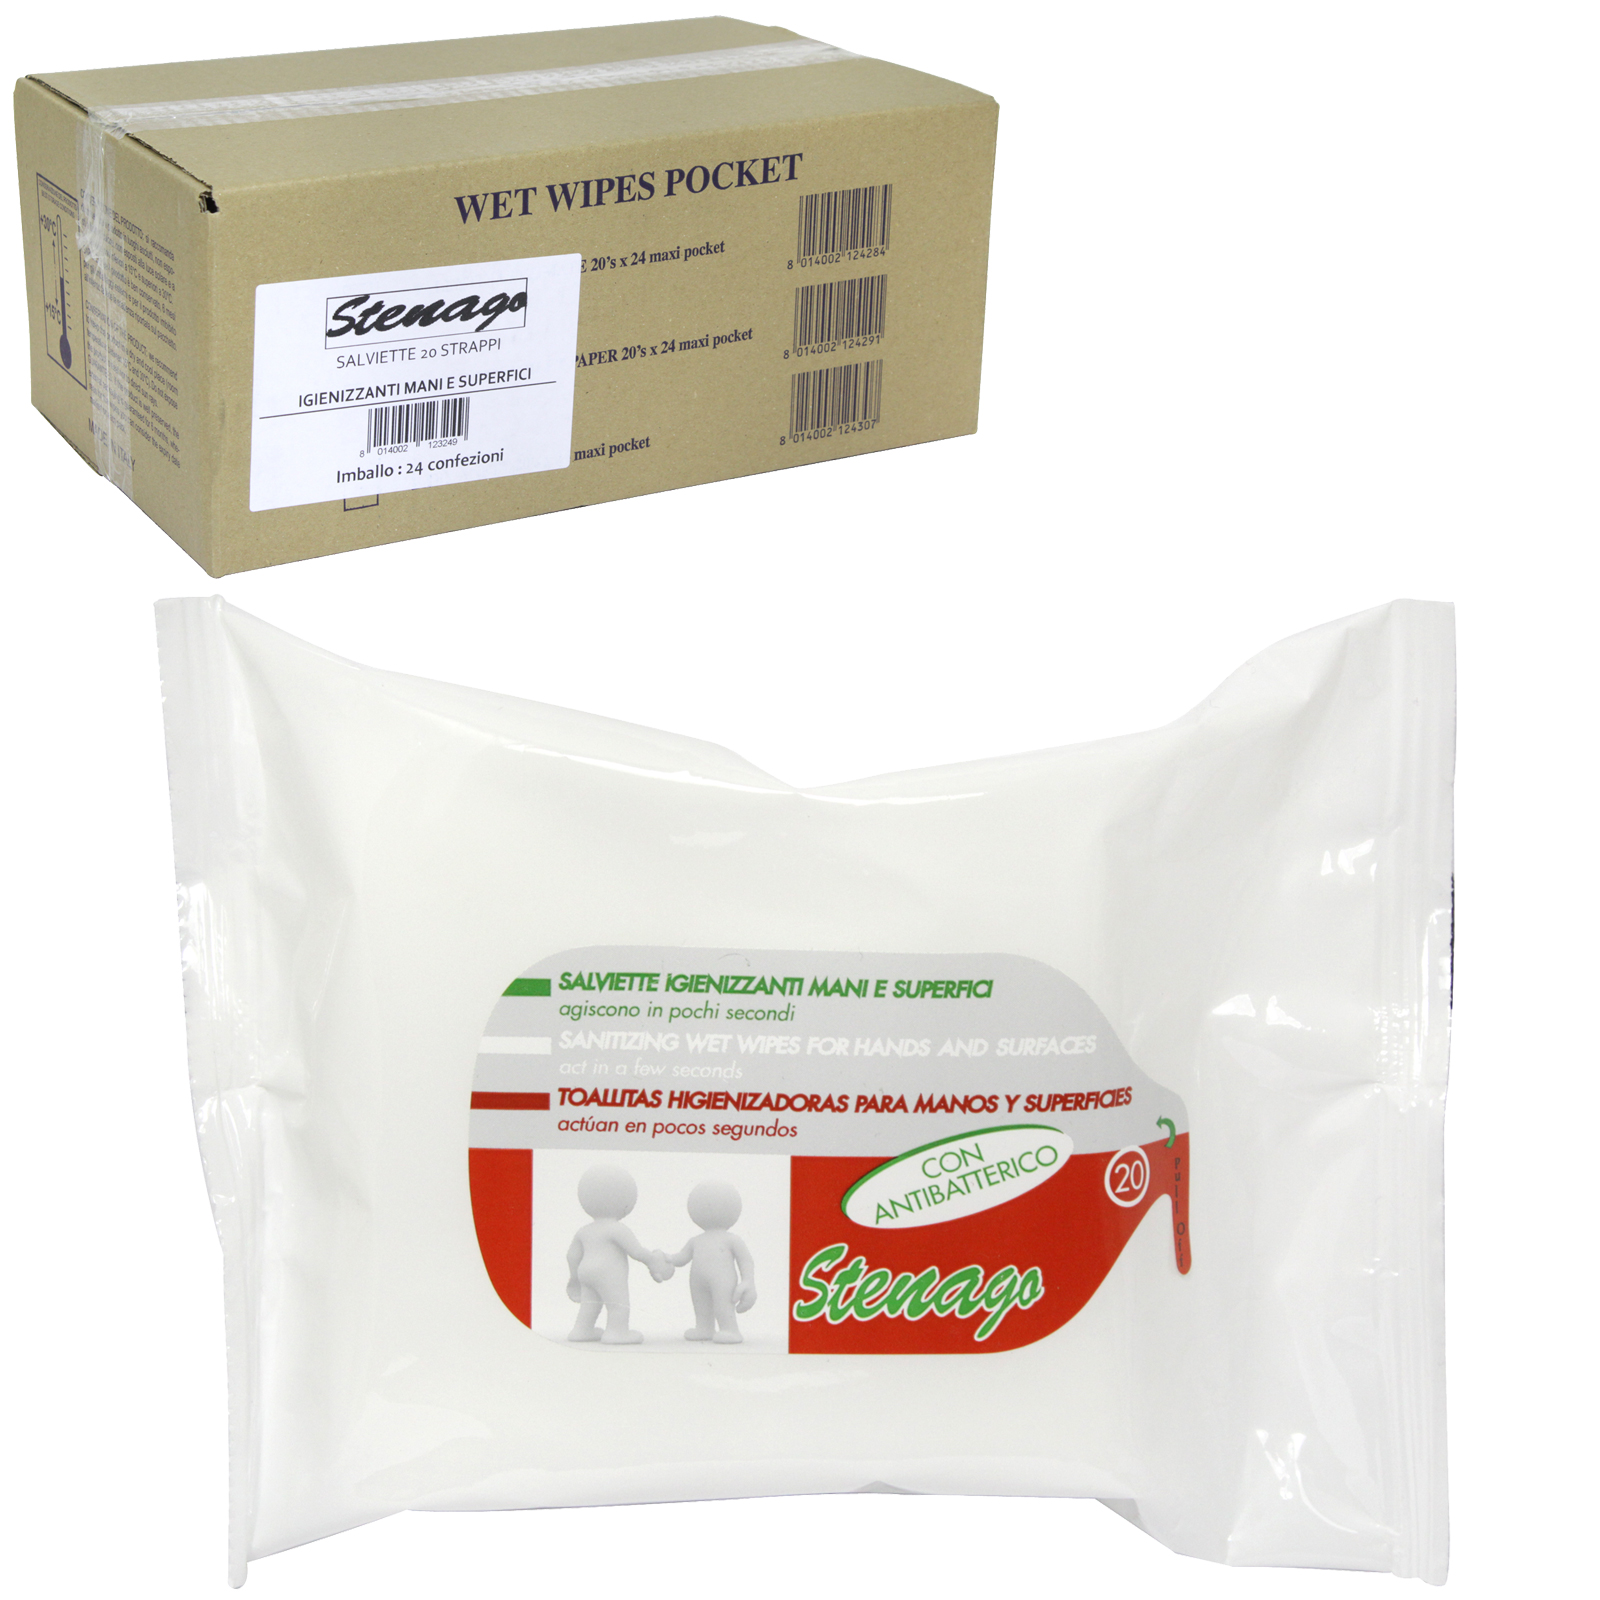 STENAGO 20 ANTI-BAC WET WIPES FOR HANDS AND SURFACES  X24